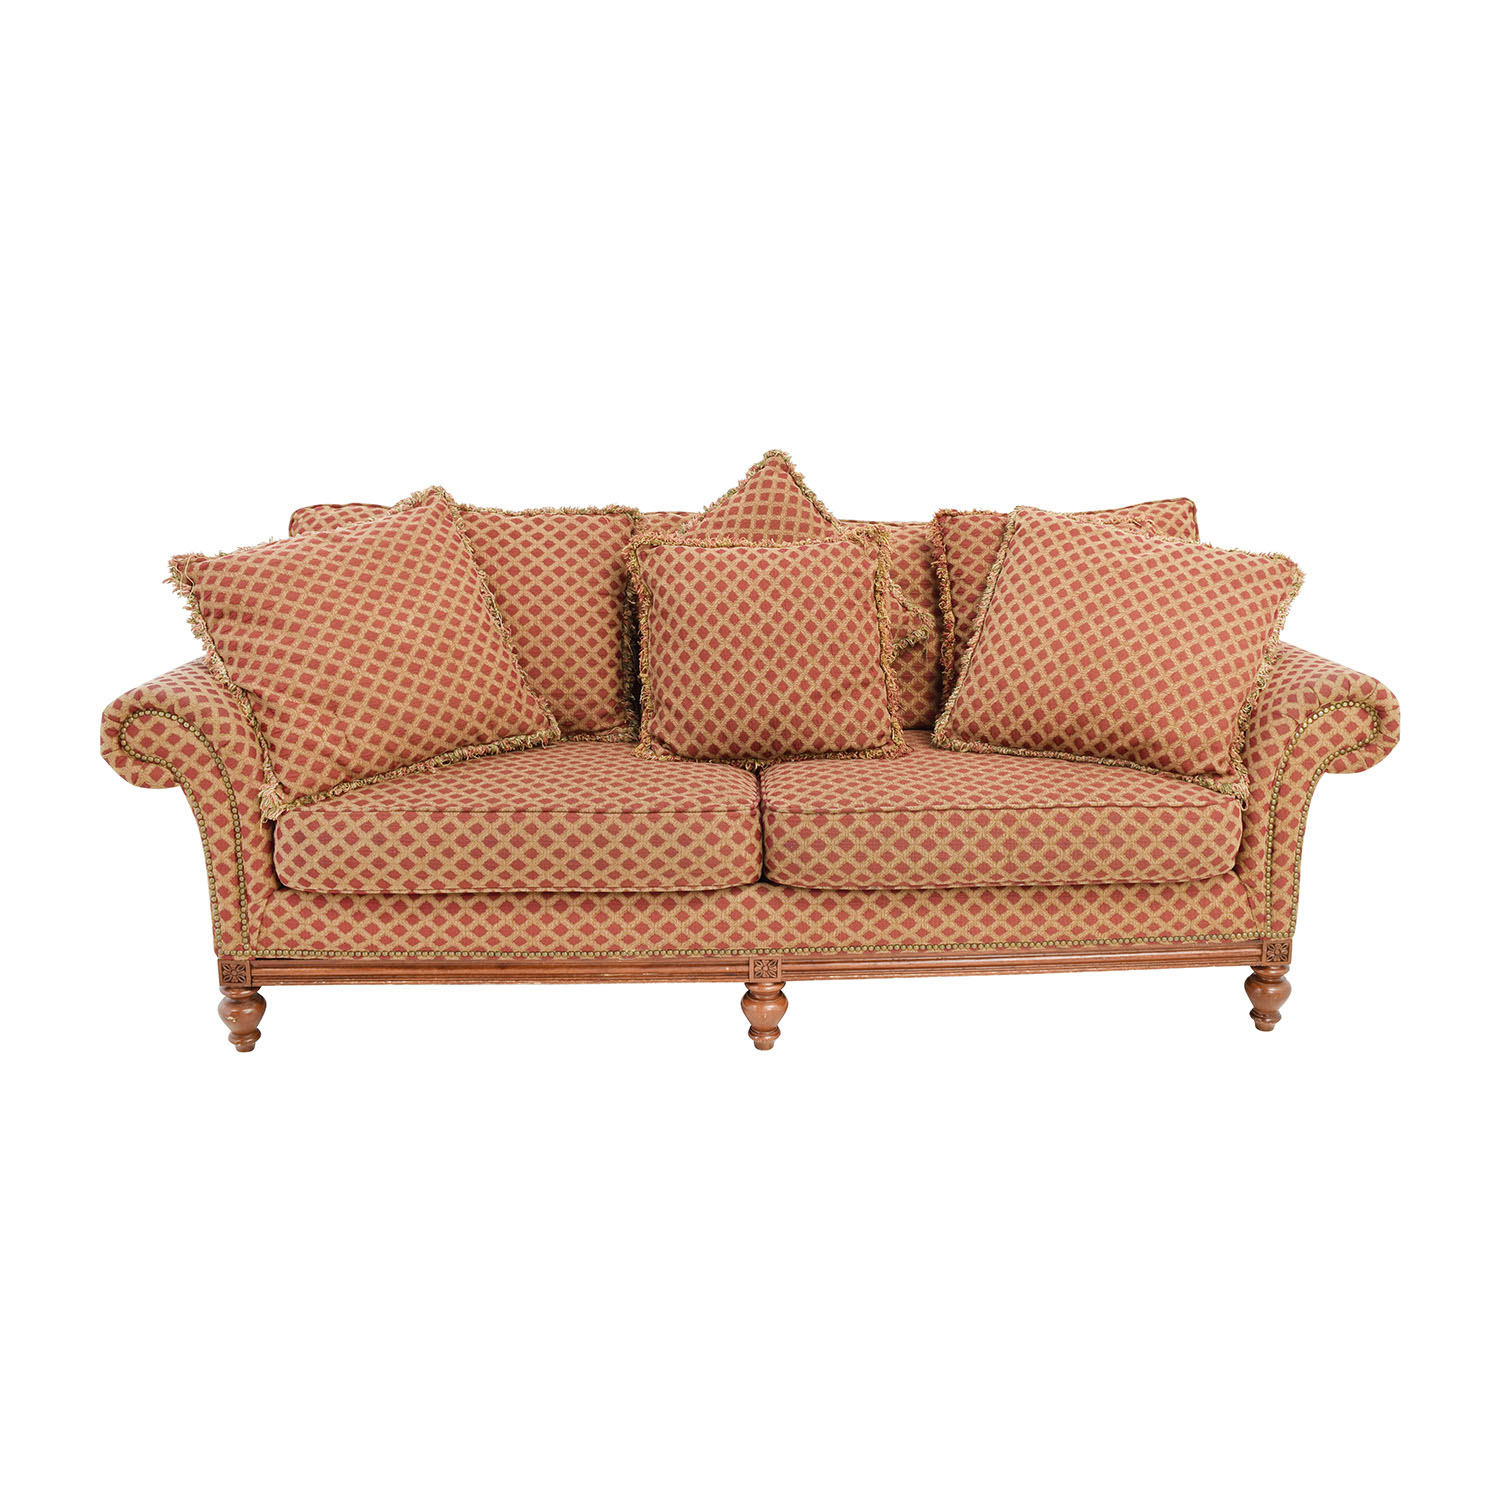 shop Bernhardt Bernhardt Red and Gold Two Cushion Seat Sofa online